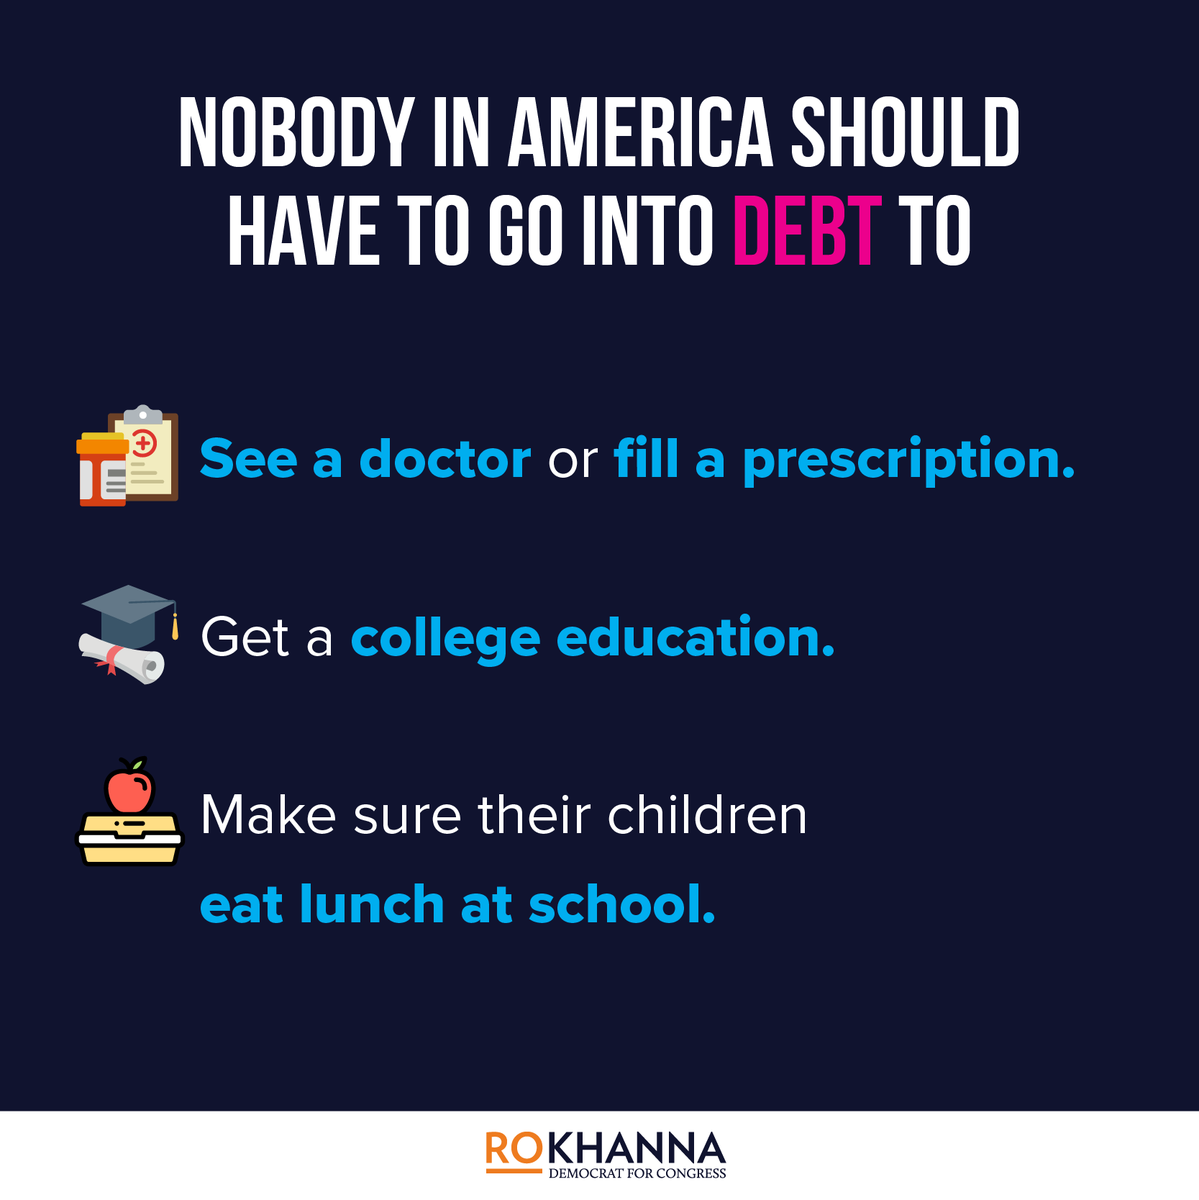 Nobody should have to go into debt for healthcare, education, or school meals in America.